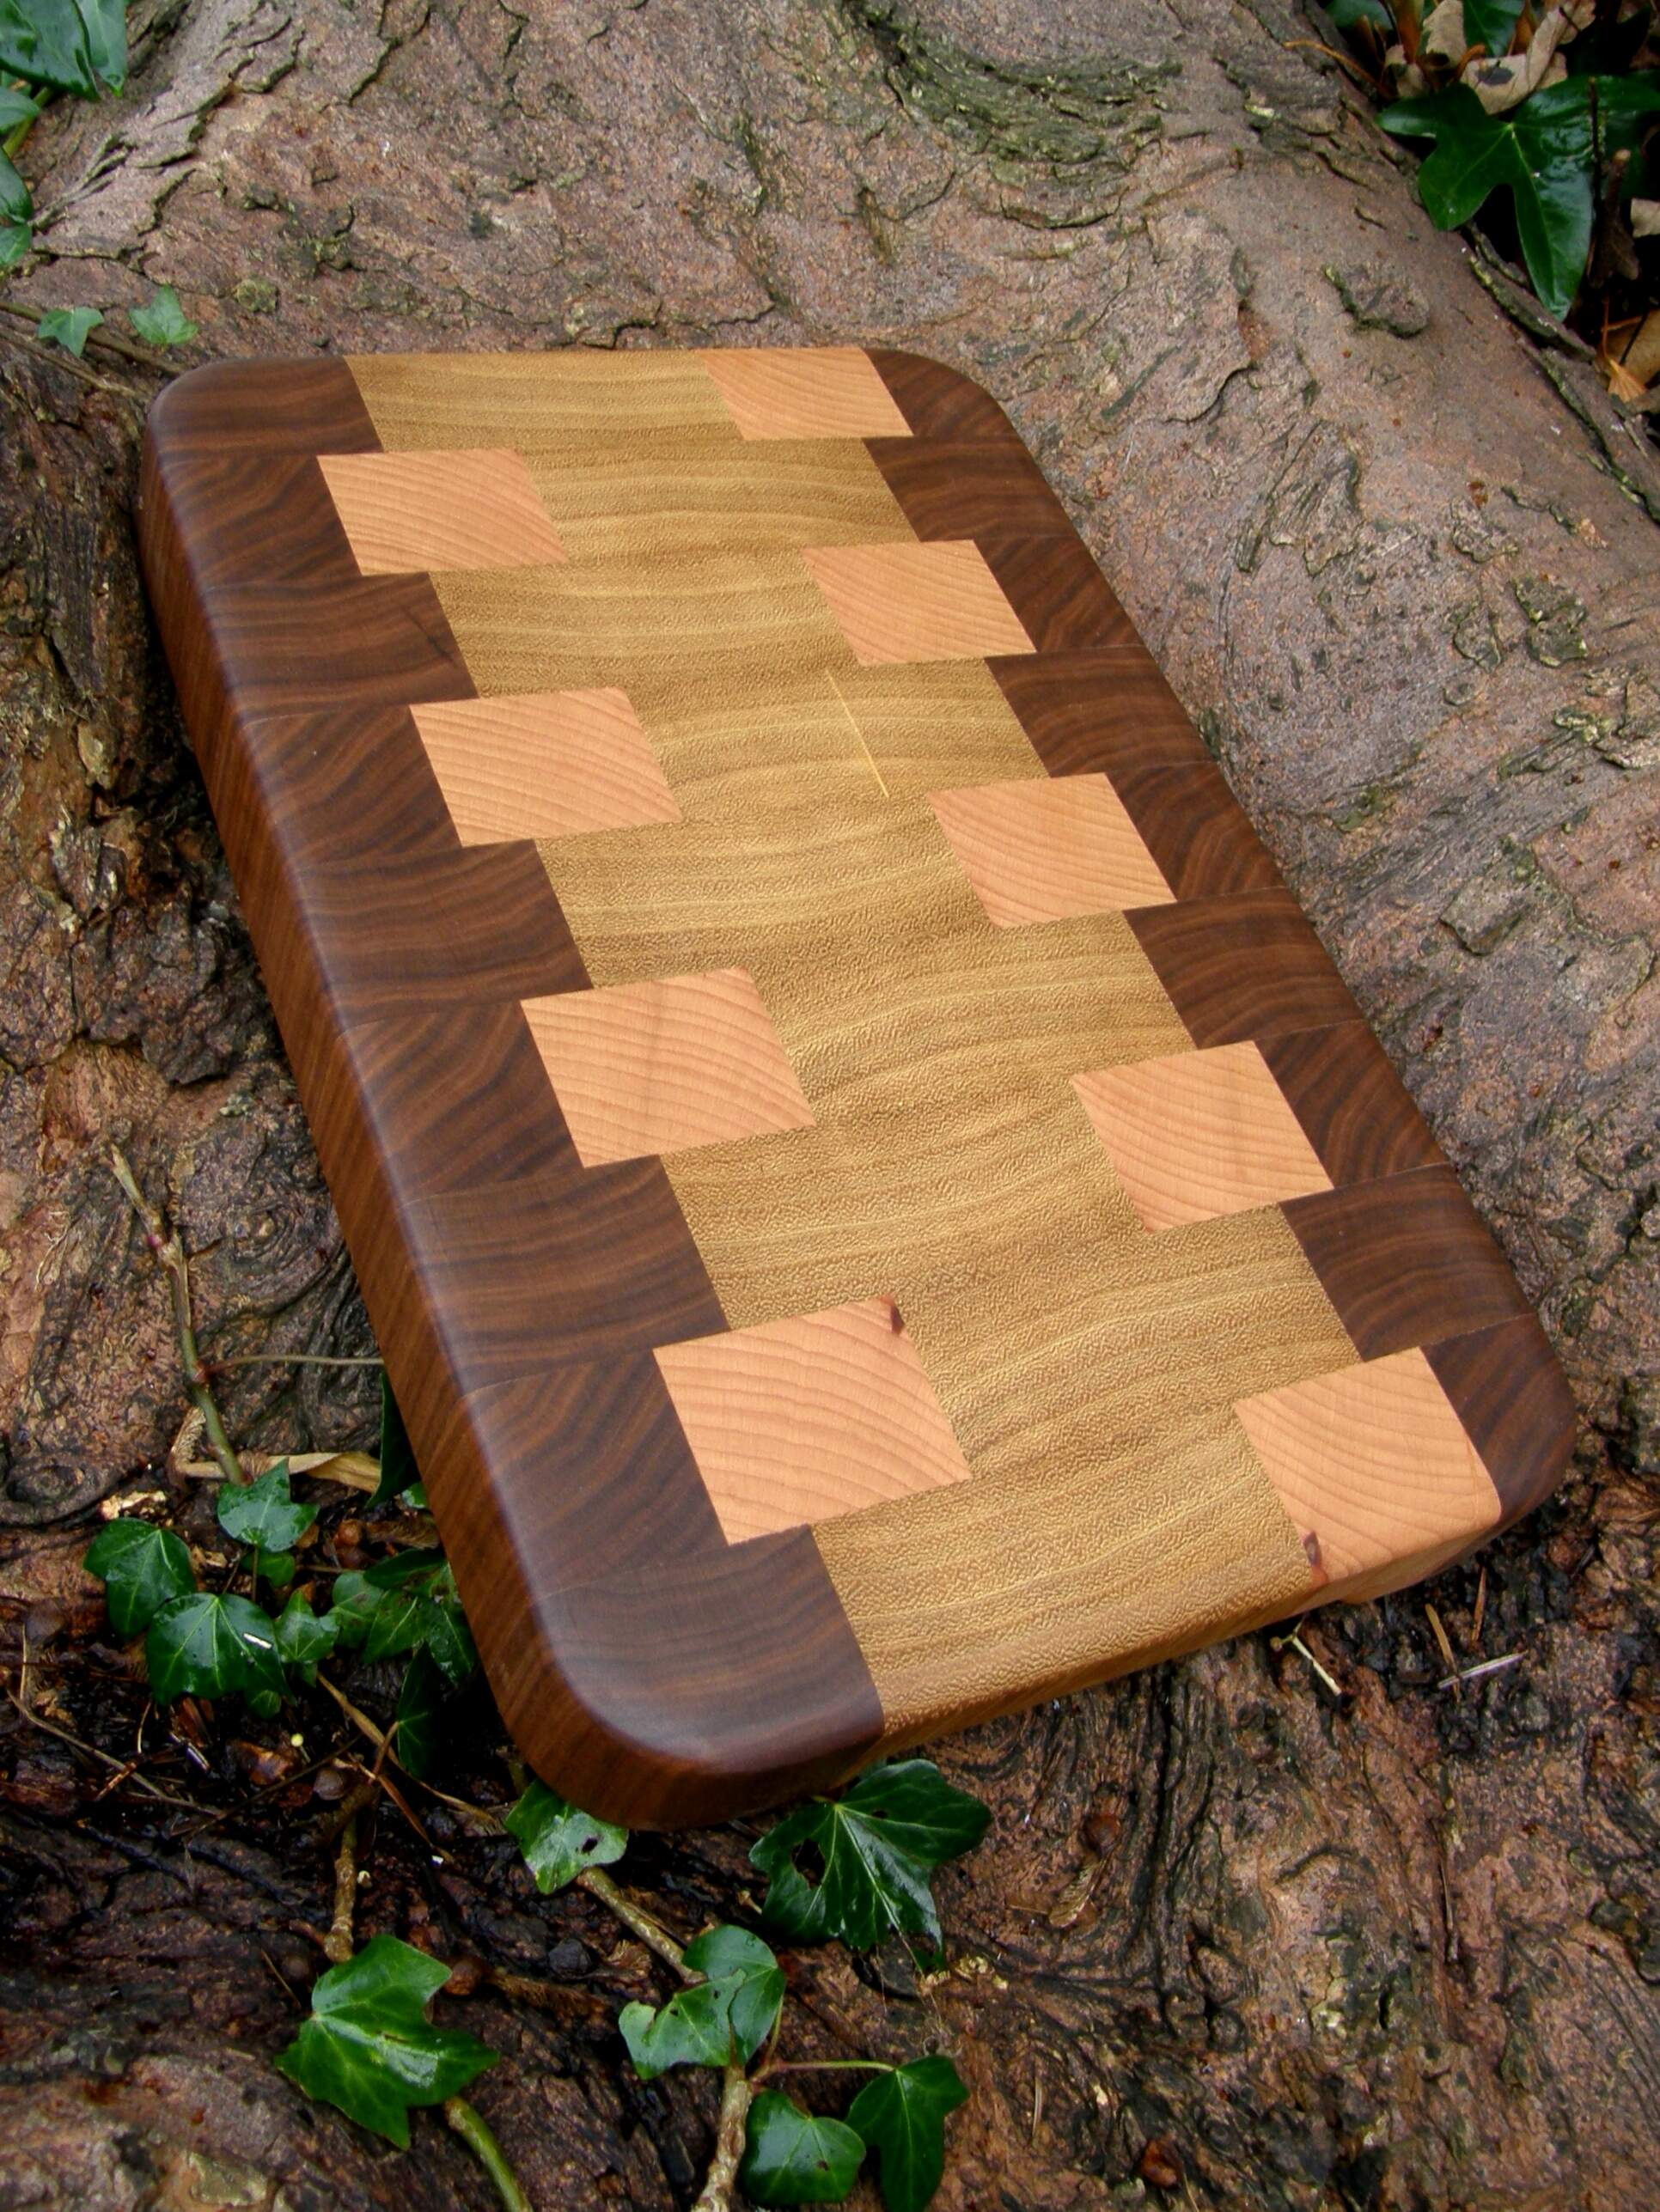 One of latest End Grain Chopping Boards Handmade in Walnut, Cherry & Iroko.